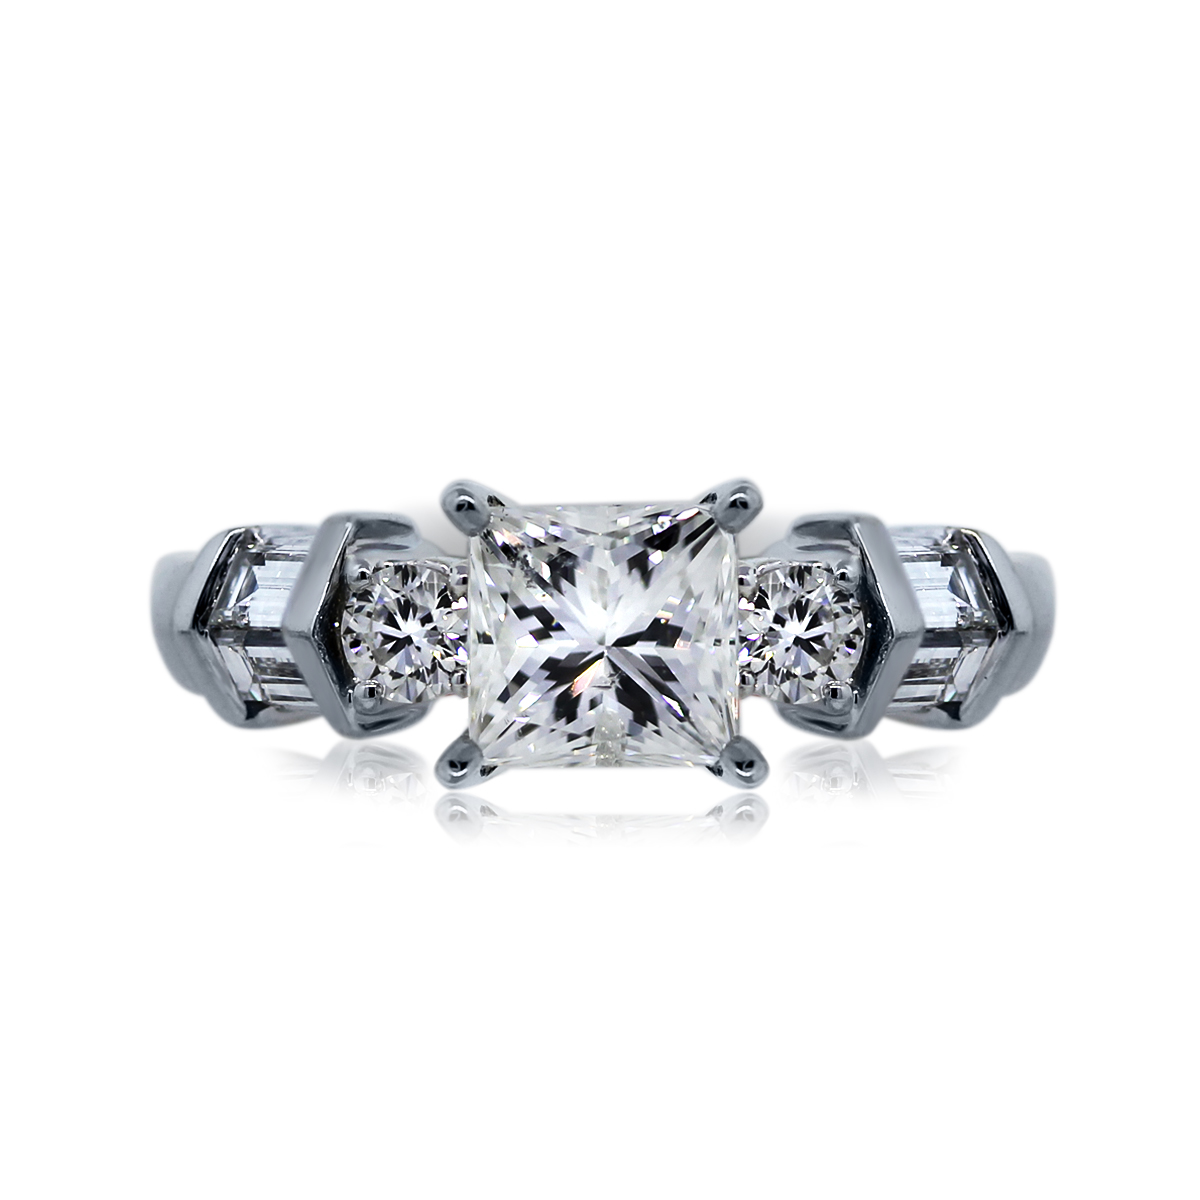 You are Viewing this Stunning Natalie K Princess Cut Engagement Ring